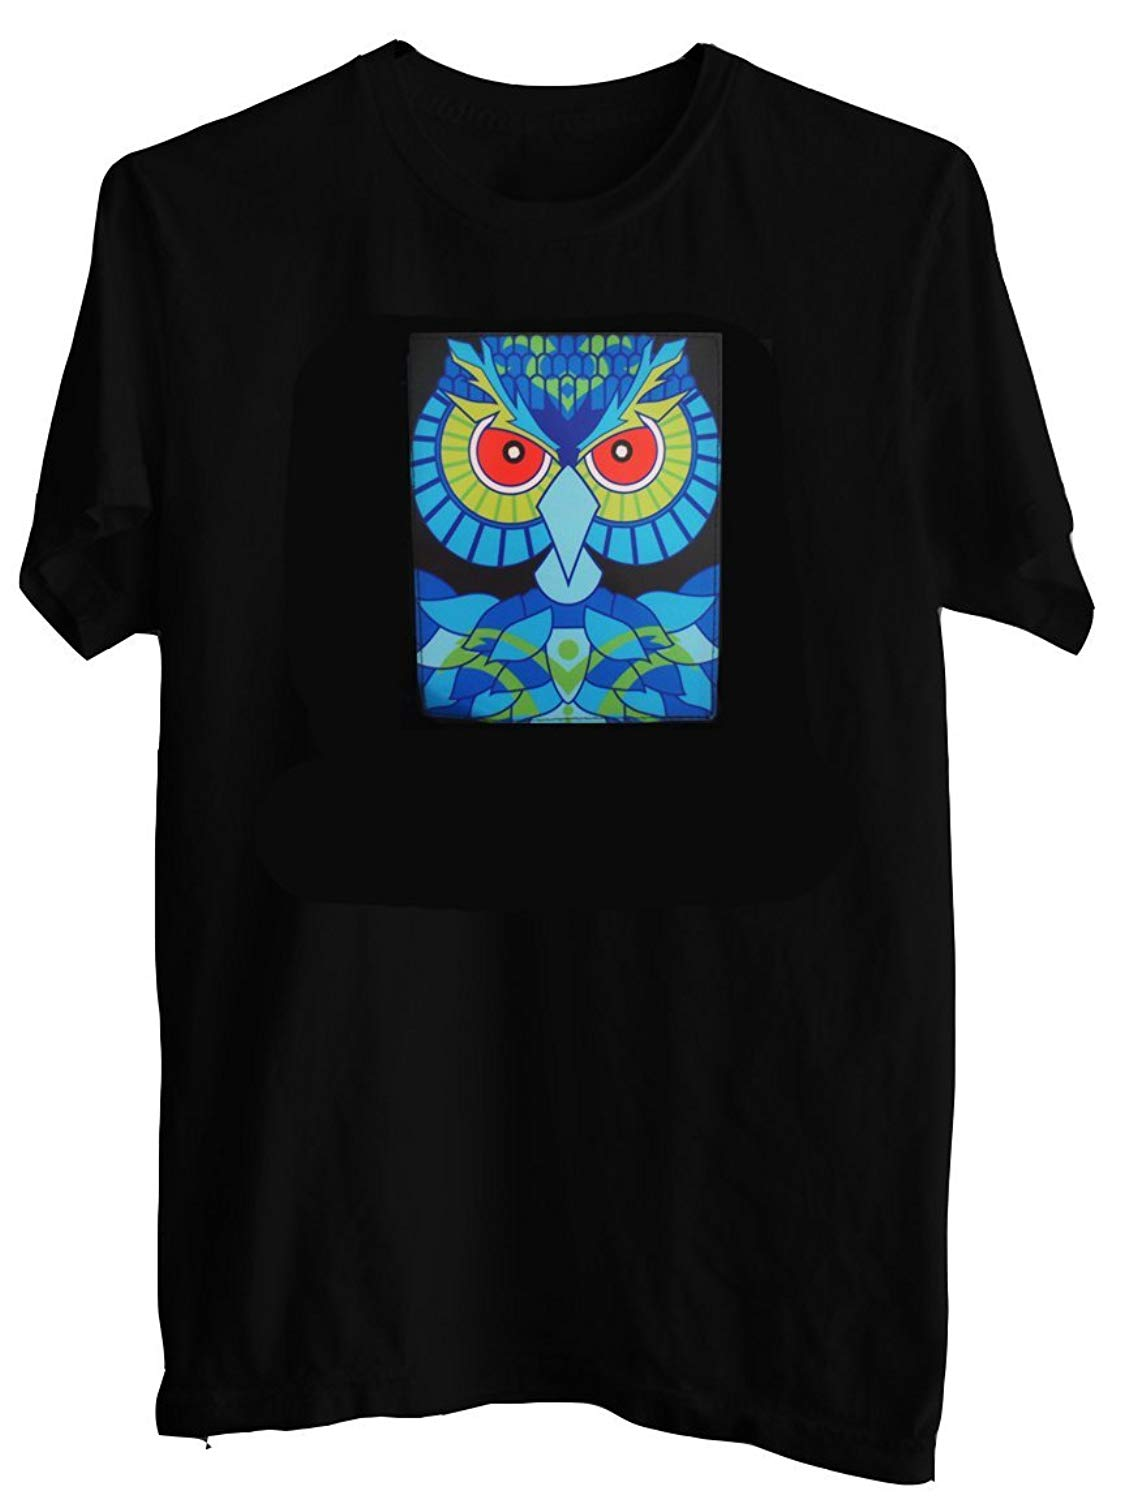 76263330a42 Get Quotations · Rave Raptor Sound Activated Shirt EDM Owl LED Shirt Light  Up T-Shirt